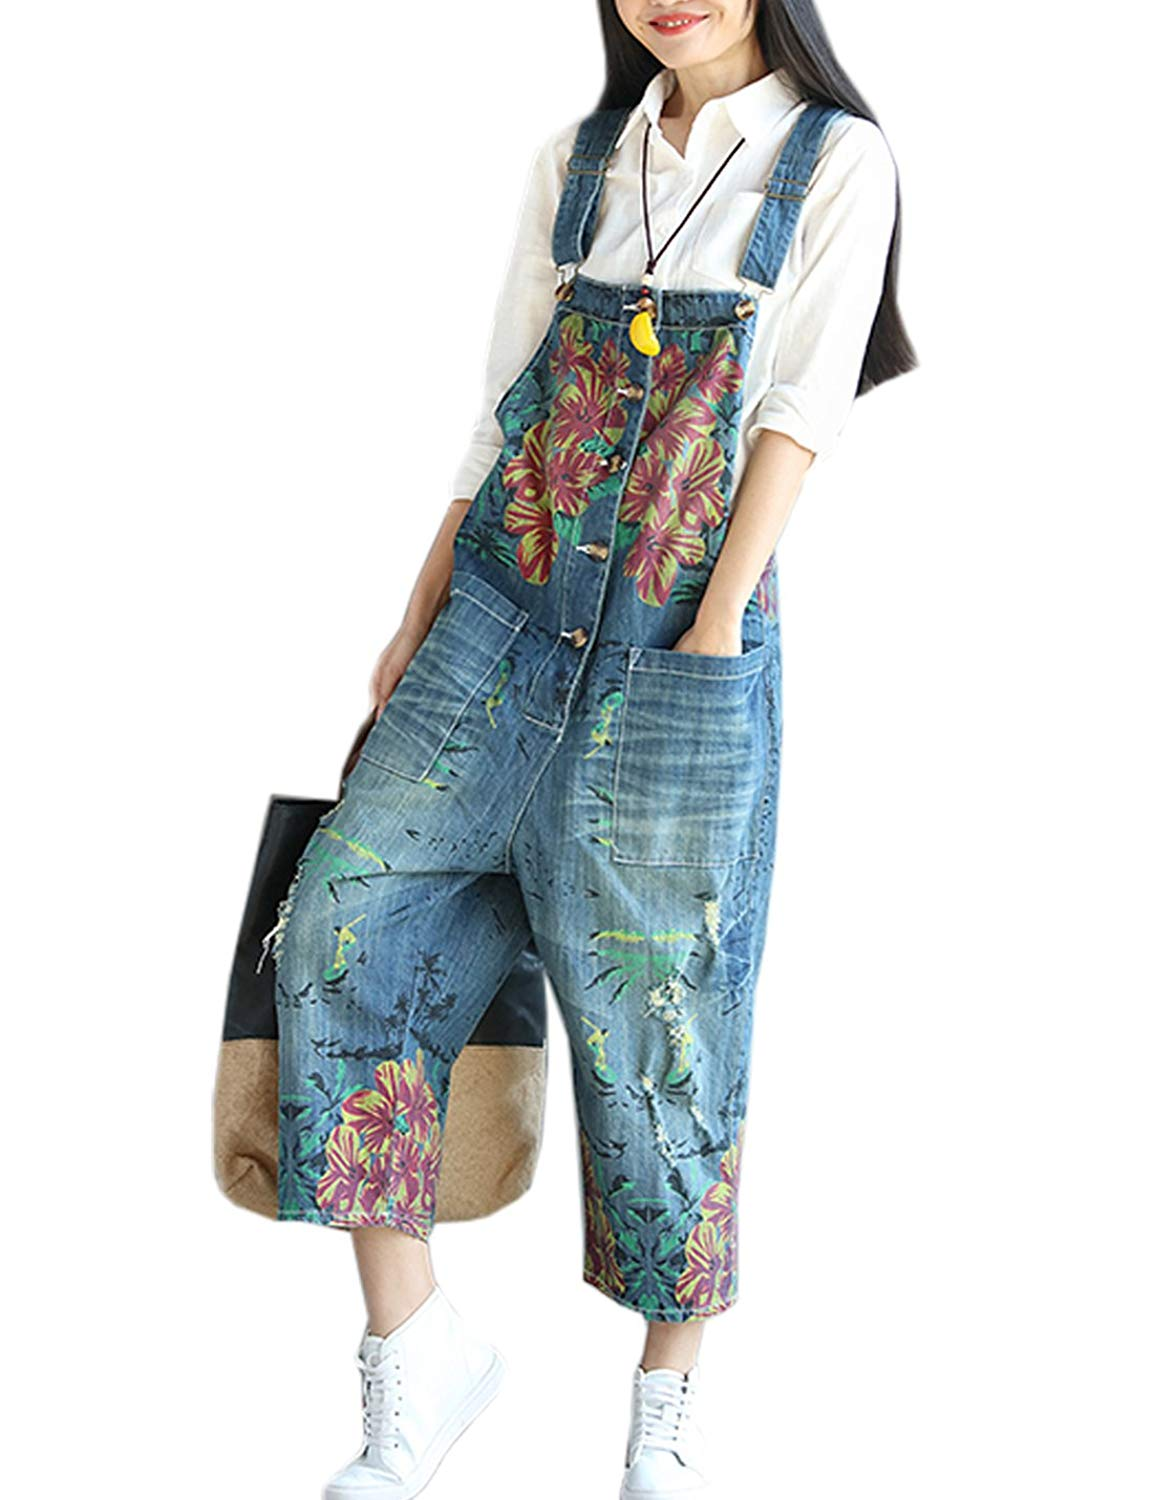 dfe98e814860 Get Quotations · Flygo Women's Loose Floral Printed Distressed Capri Denim  Bib Overalls Jumpsuit Rompers with Pockets